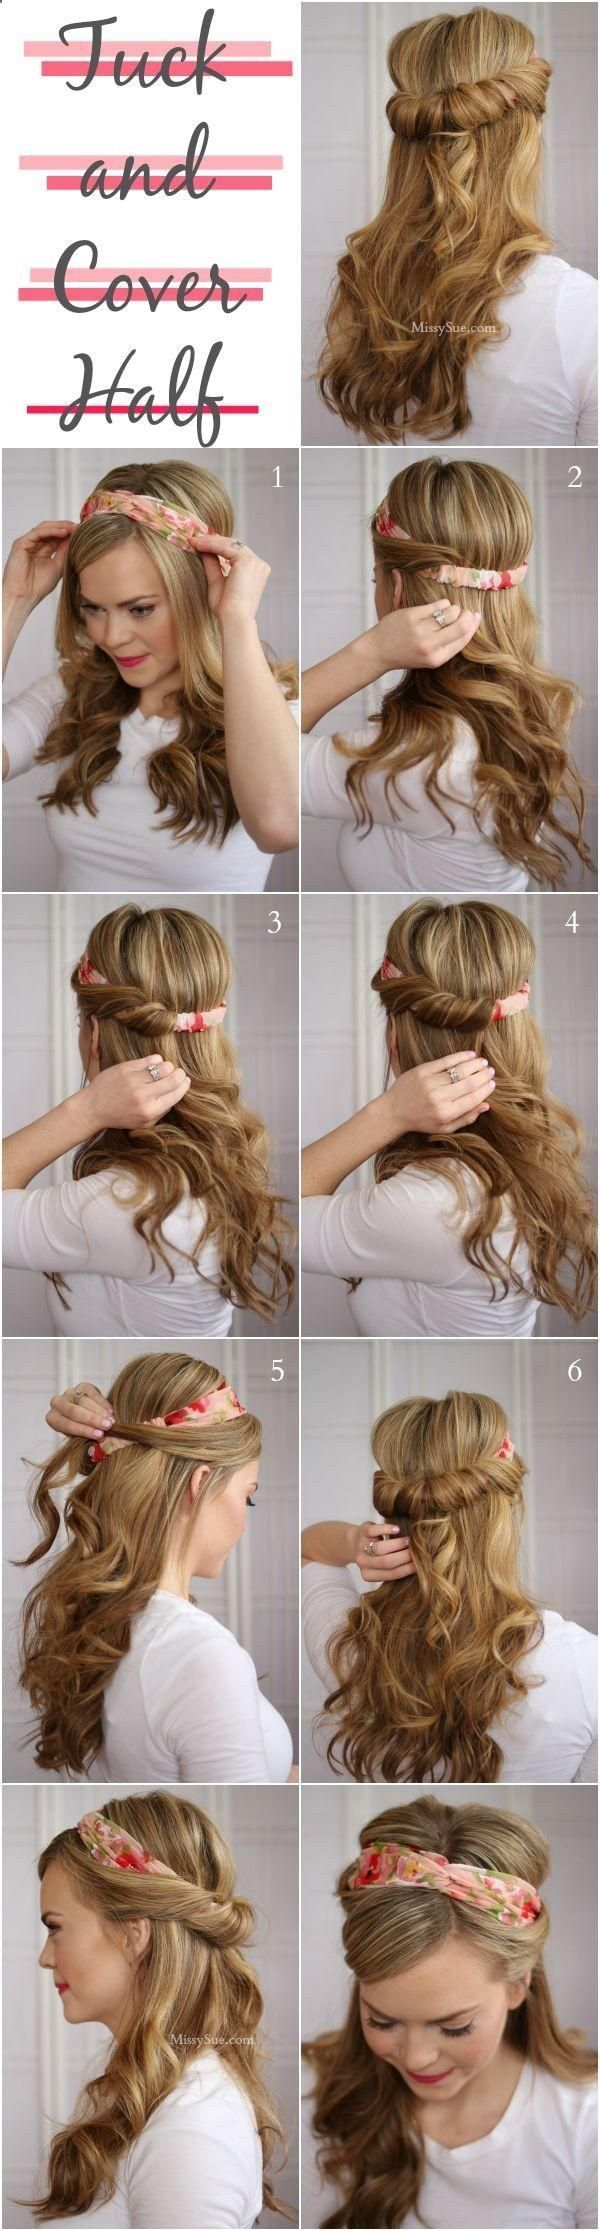 Carefree Beach Hairstyle Tutorials | Style